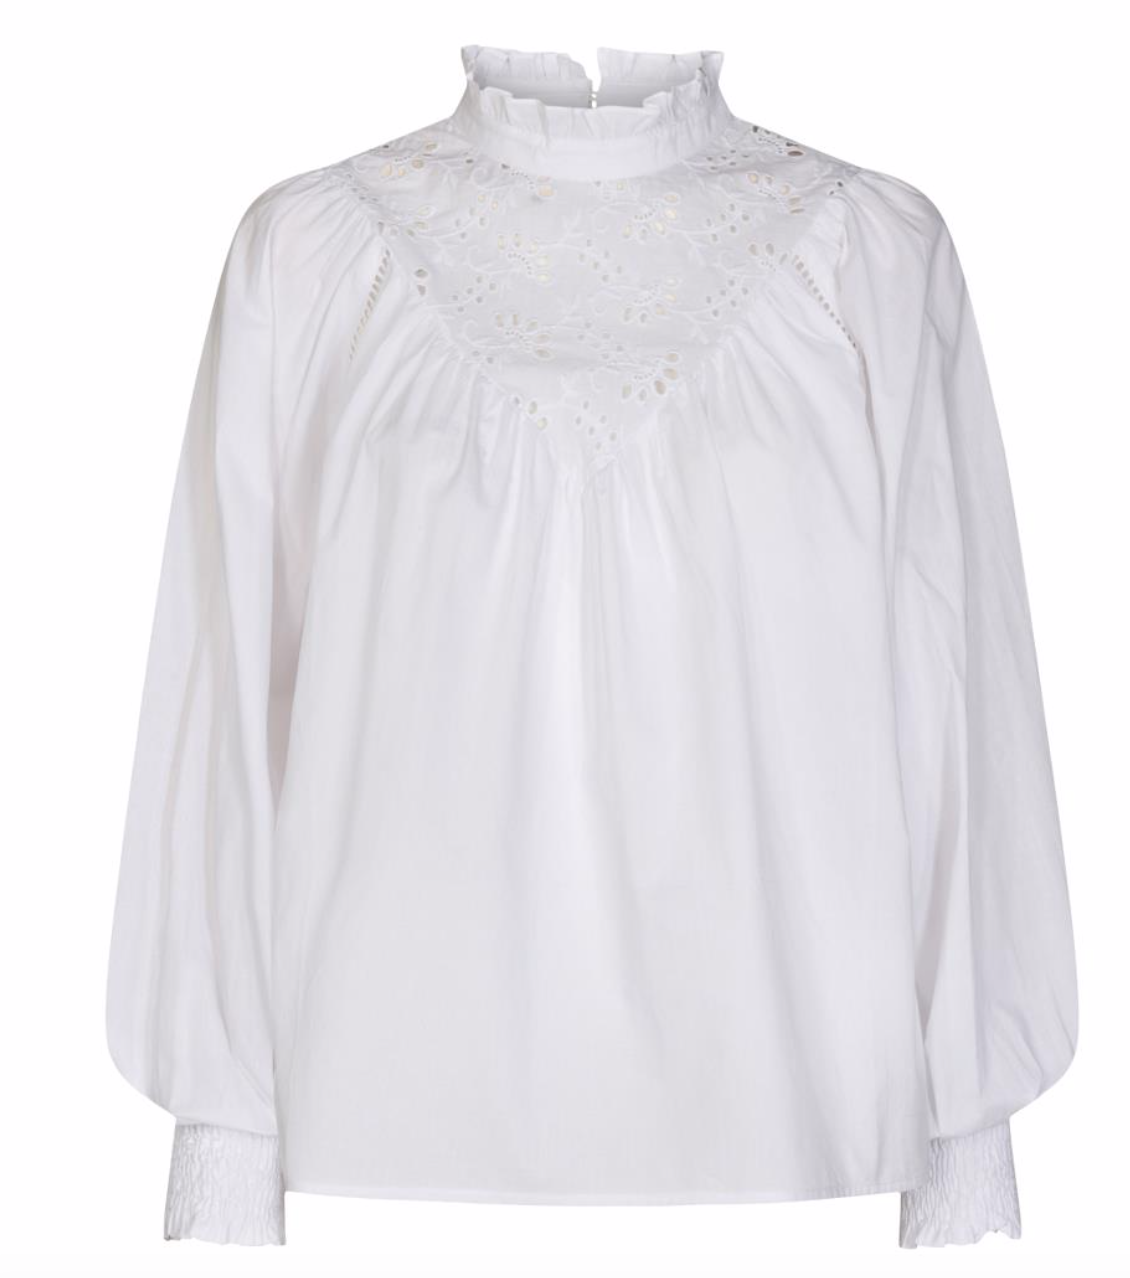 co couture briela anglaise shirt White